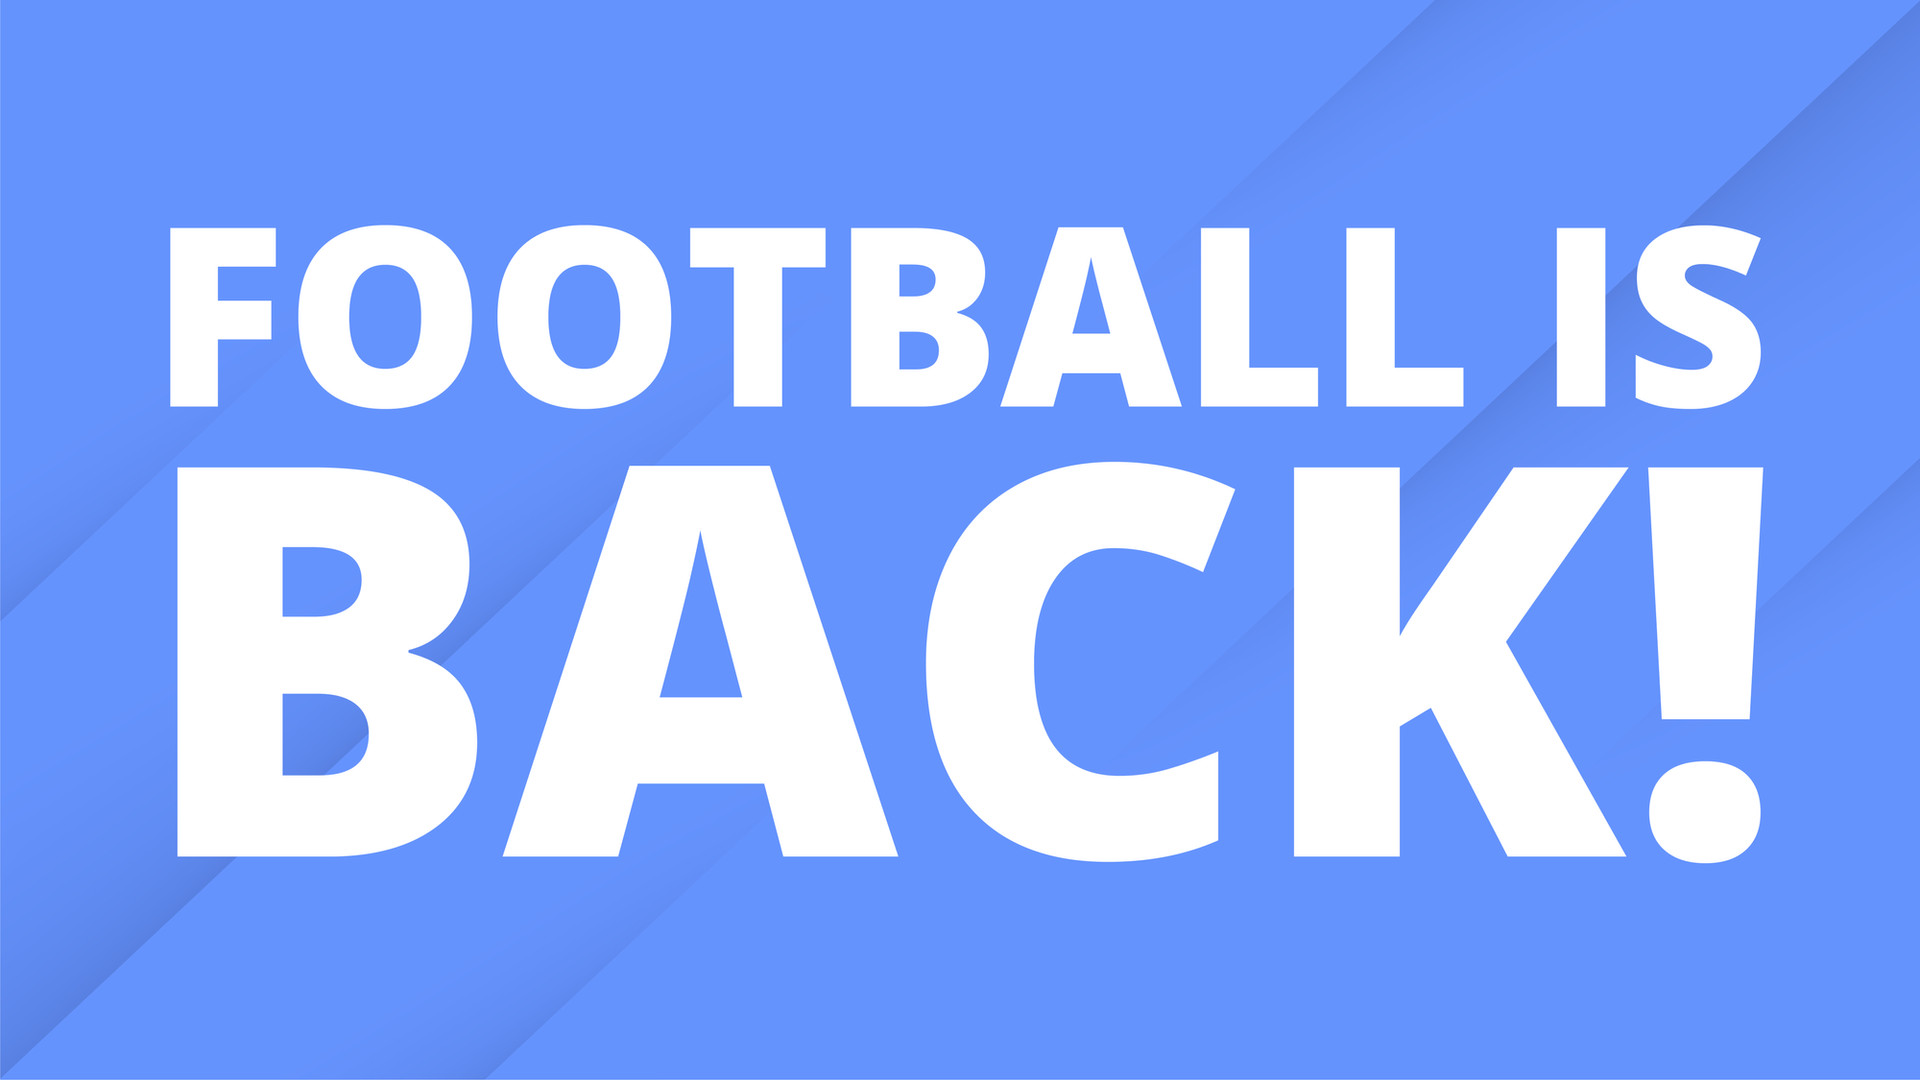 Back to football!